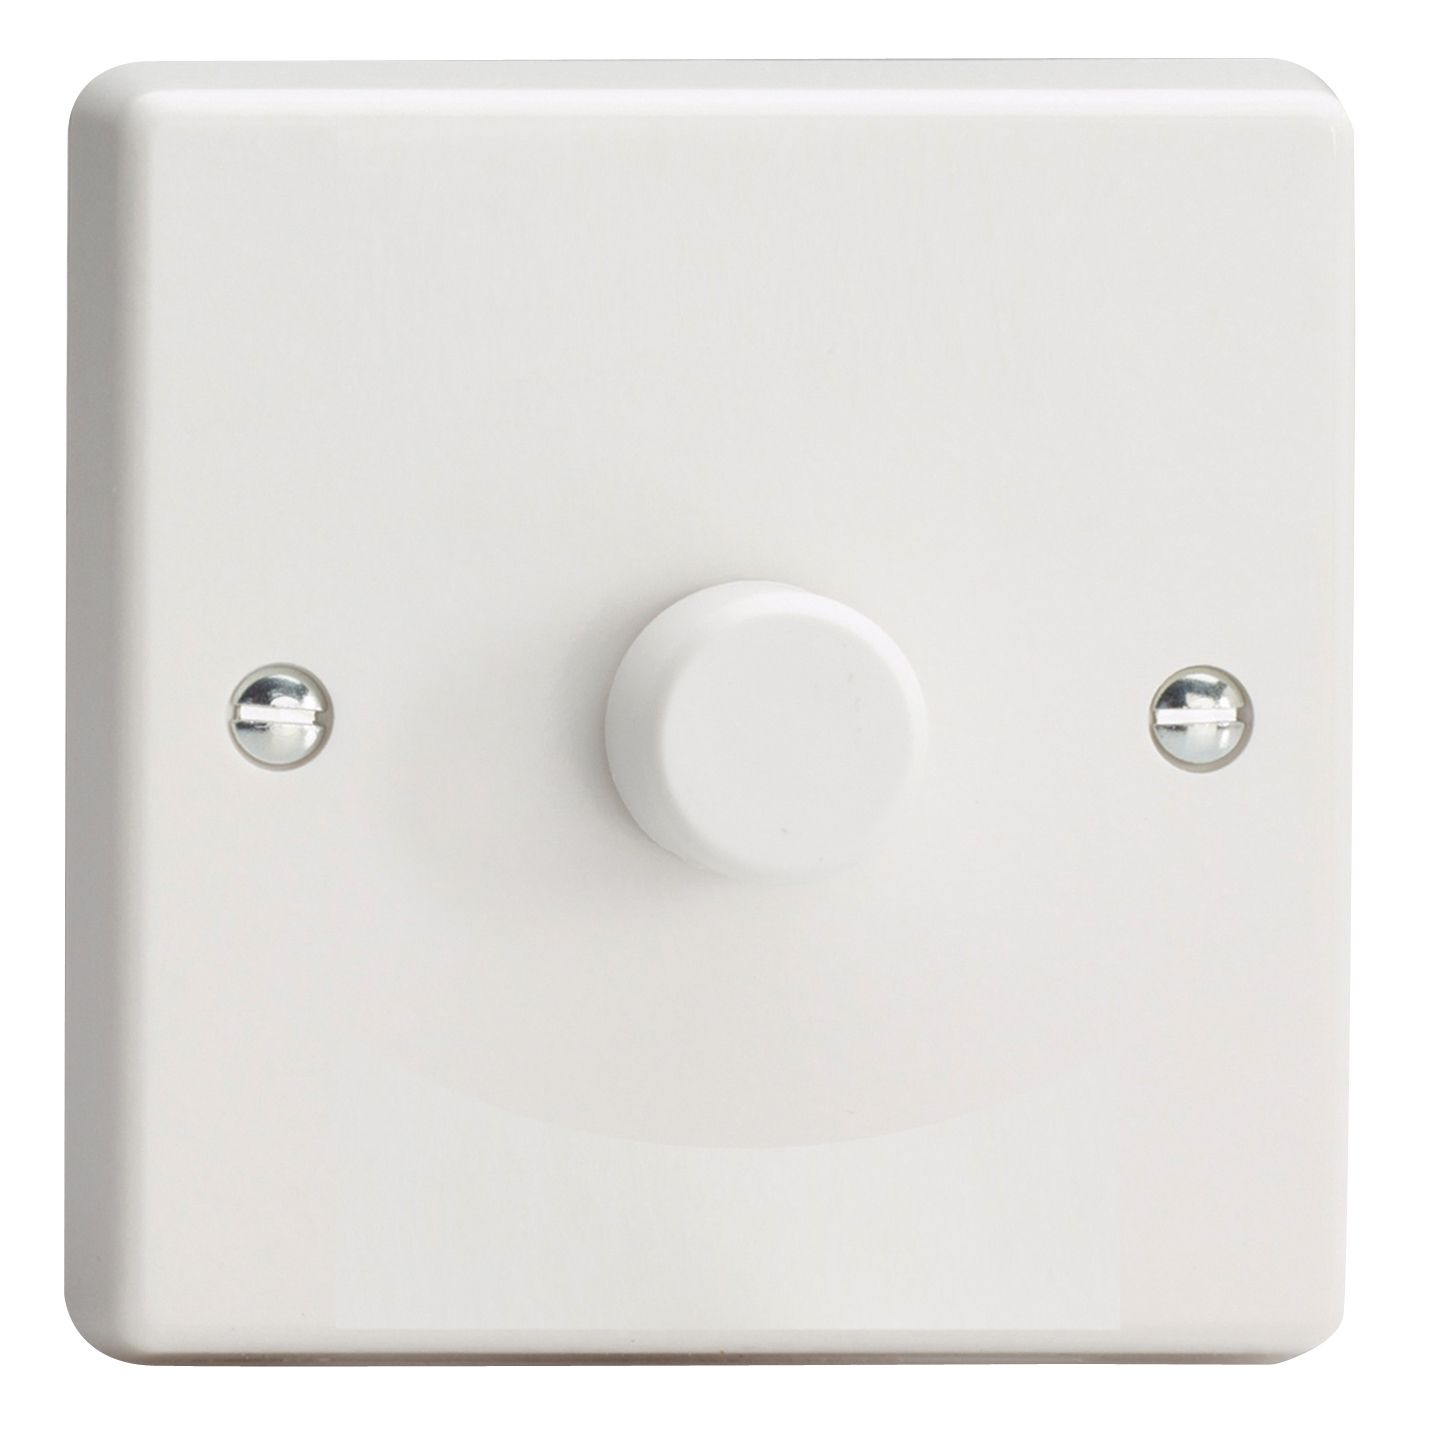 Varilight 2 Way Single White Plastic Dimmer Switch Departments 3 Dimmers Diy At Bq